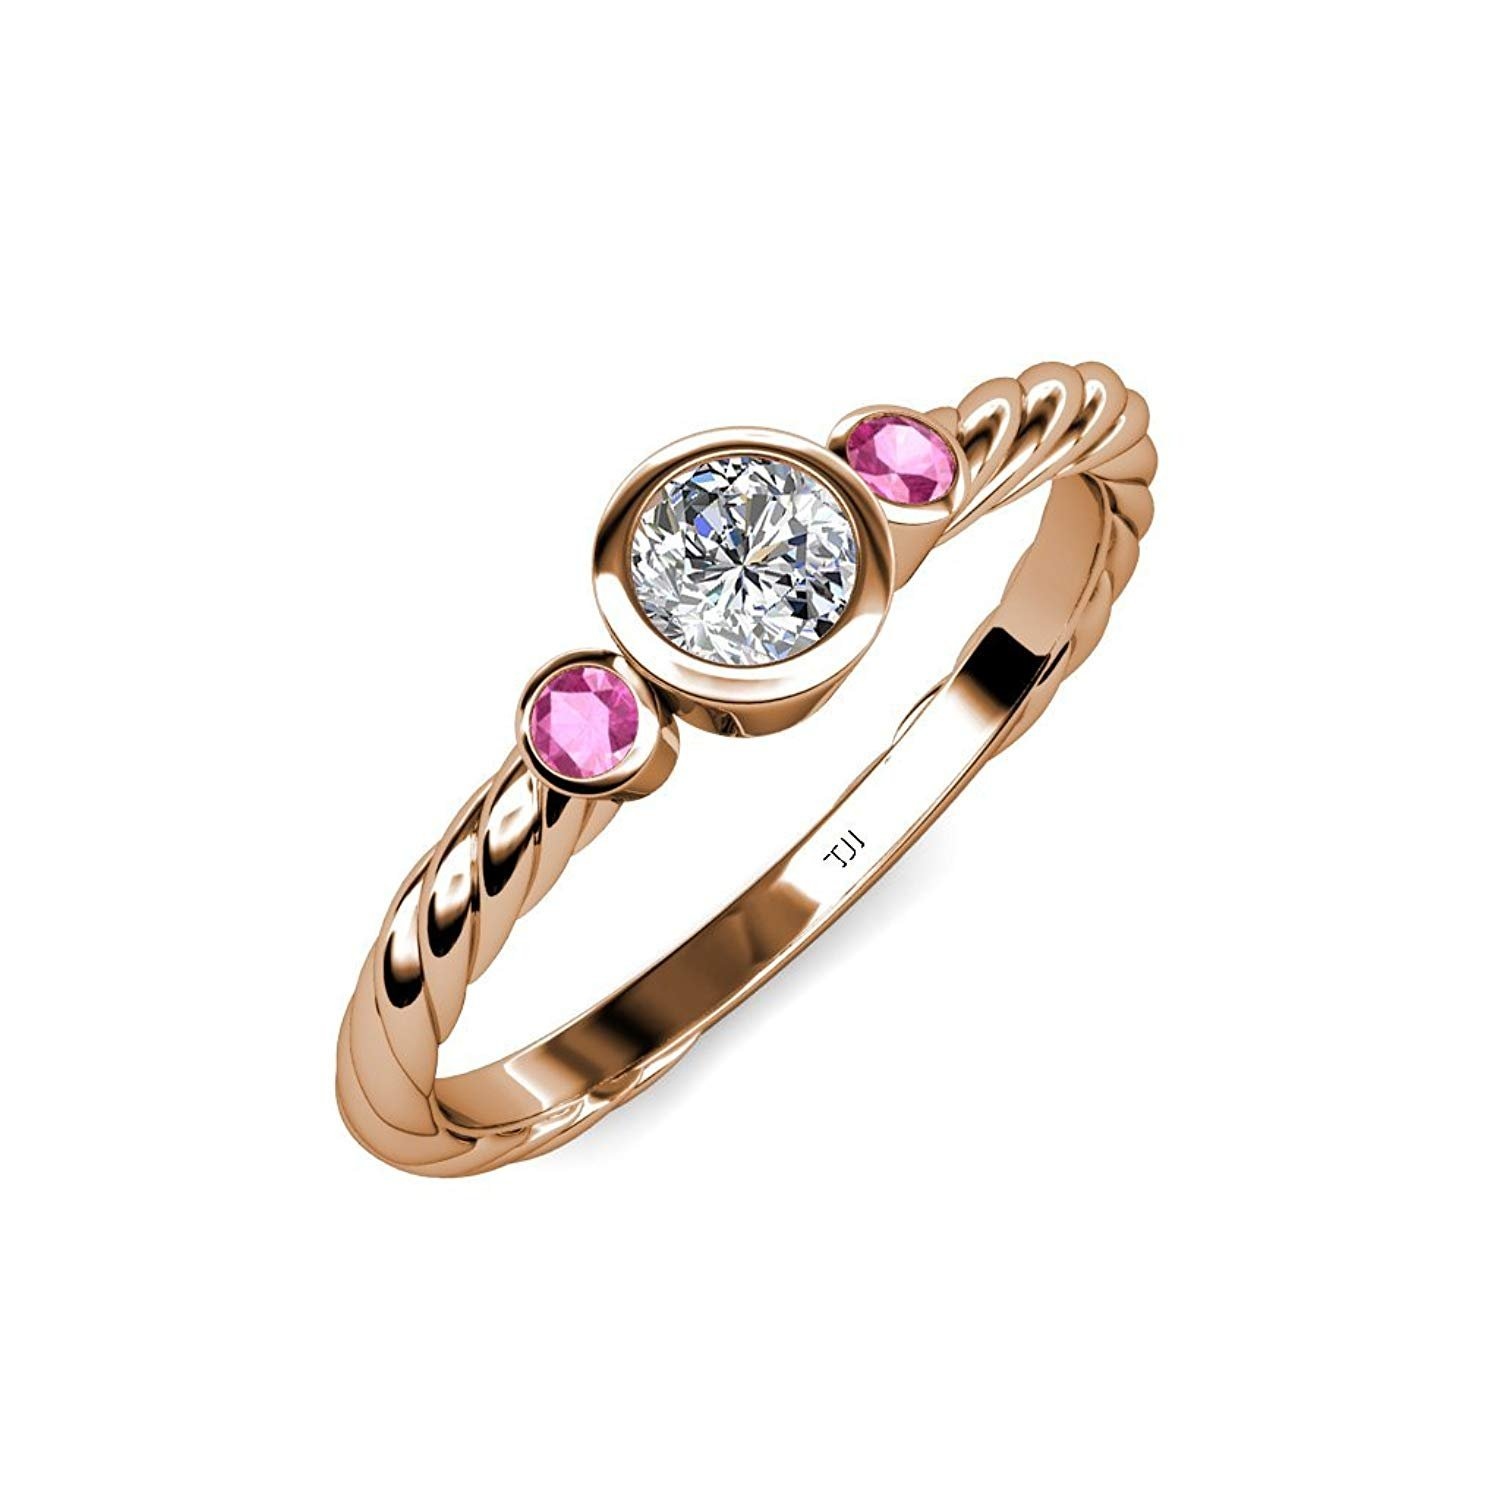 Diamond (SI2, G) and Pink Sapphire Three Stone Rope Ring 0.71 ct tw in 14K Rose Gold.size 6.5 by TriJewels